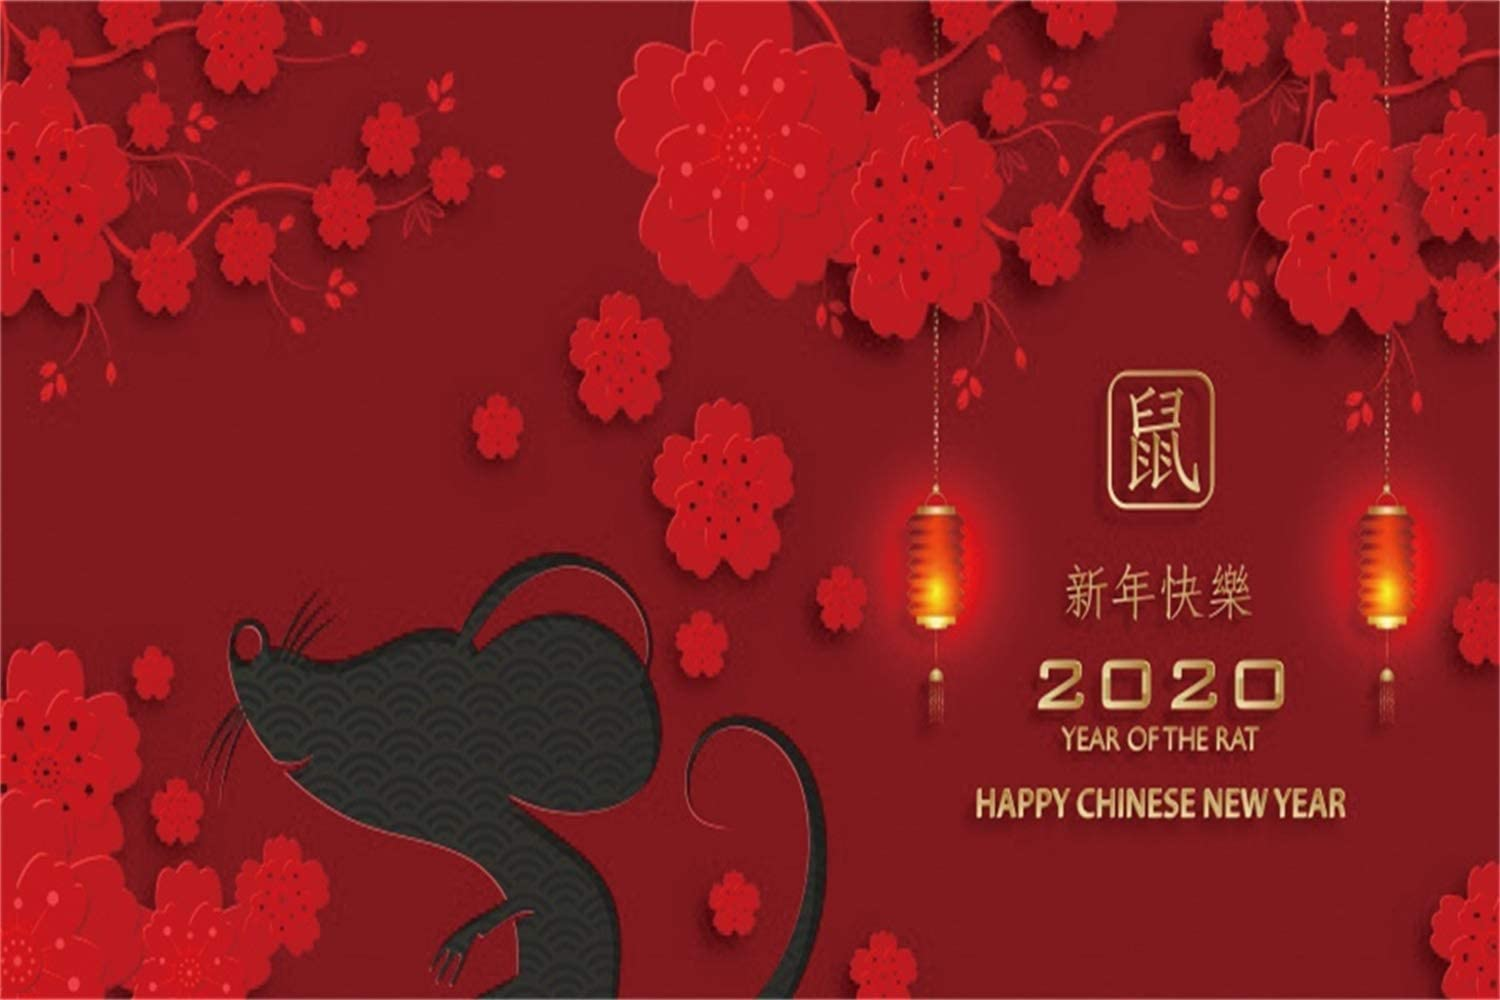 Leowefowa 12x8ft Happy Chinese New Year 2020 Year of The Rat Backdrop Vinyl Cute Mouse Sketch Red Flowers Lanterns Photography Background New Year Carnival Party Banner Greeting Card Studio